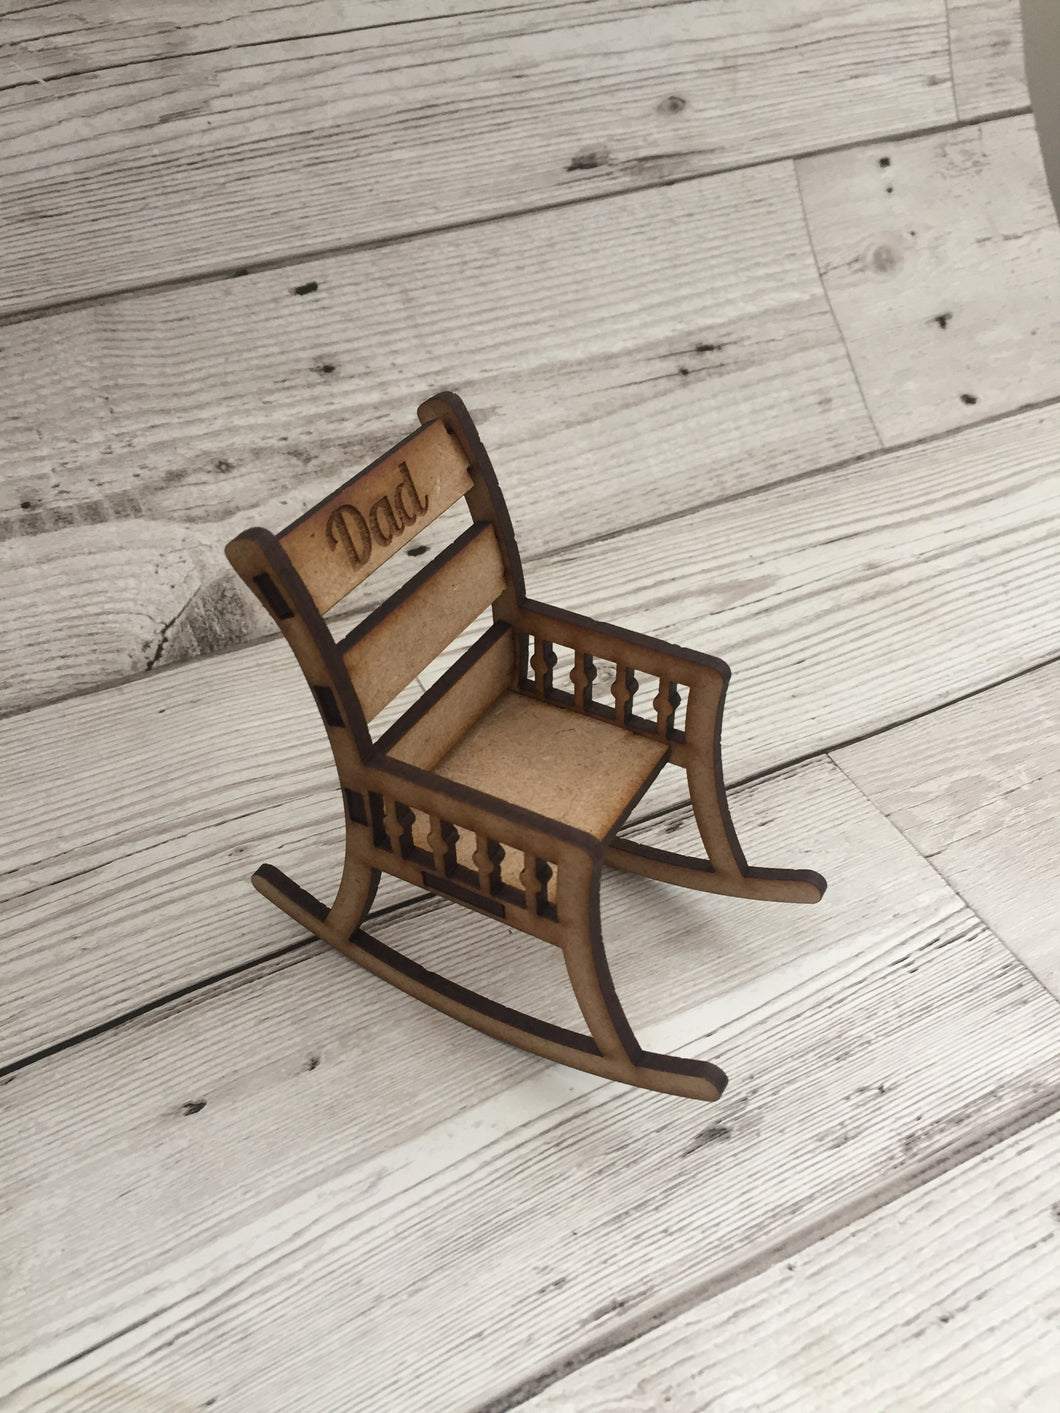 Wooden rocking chair - Laser LLama Designs Ltd